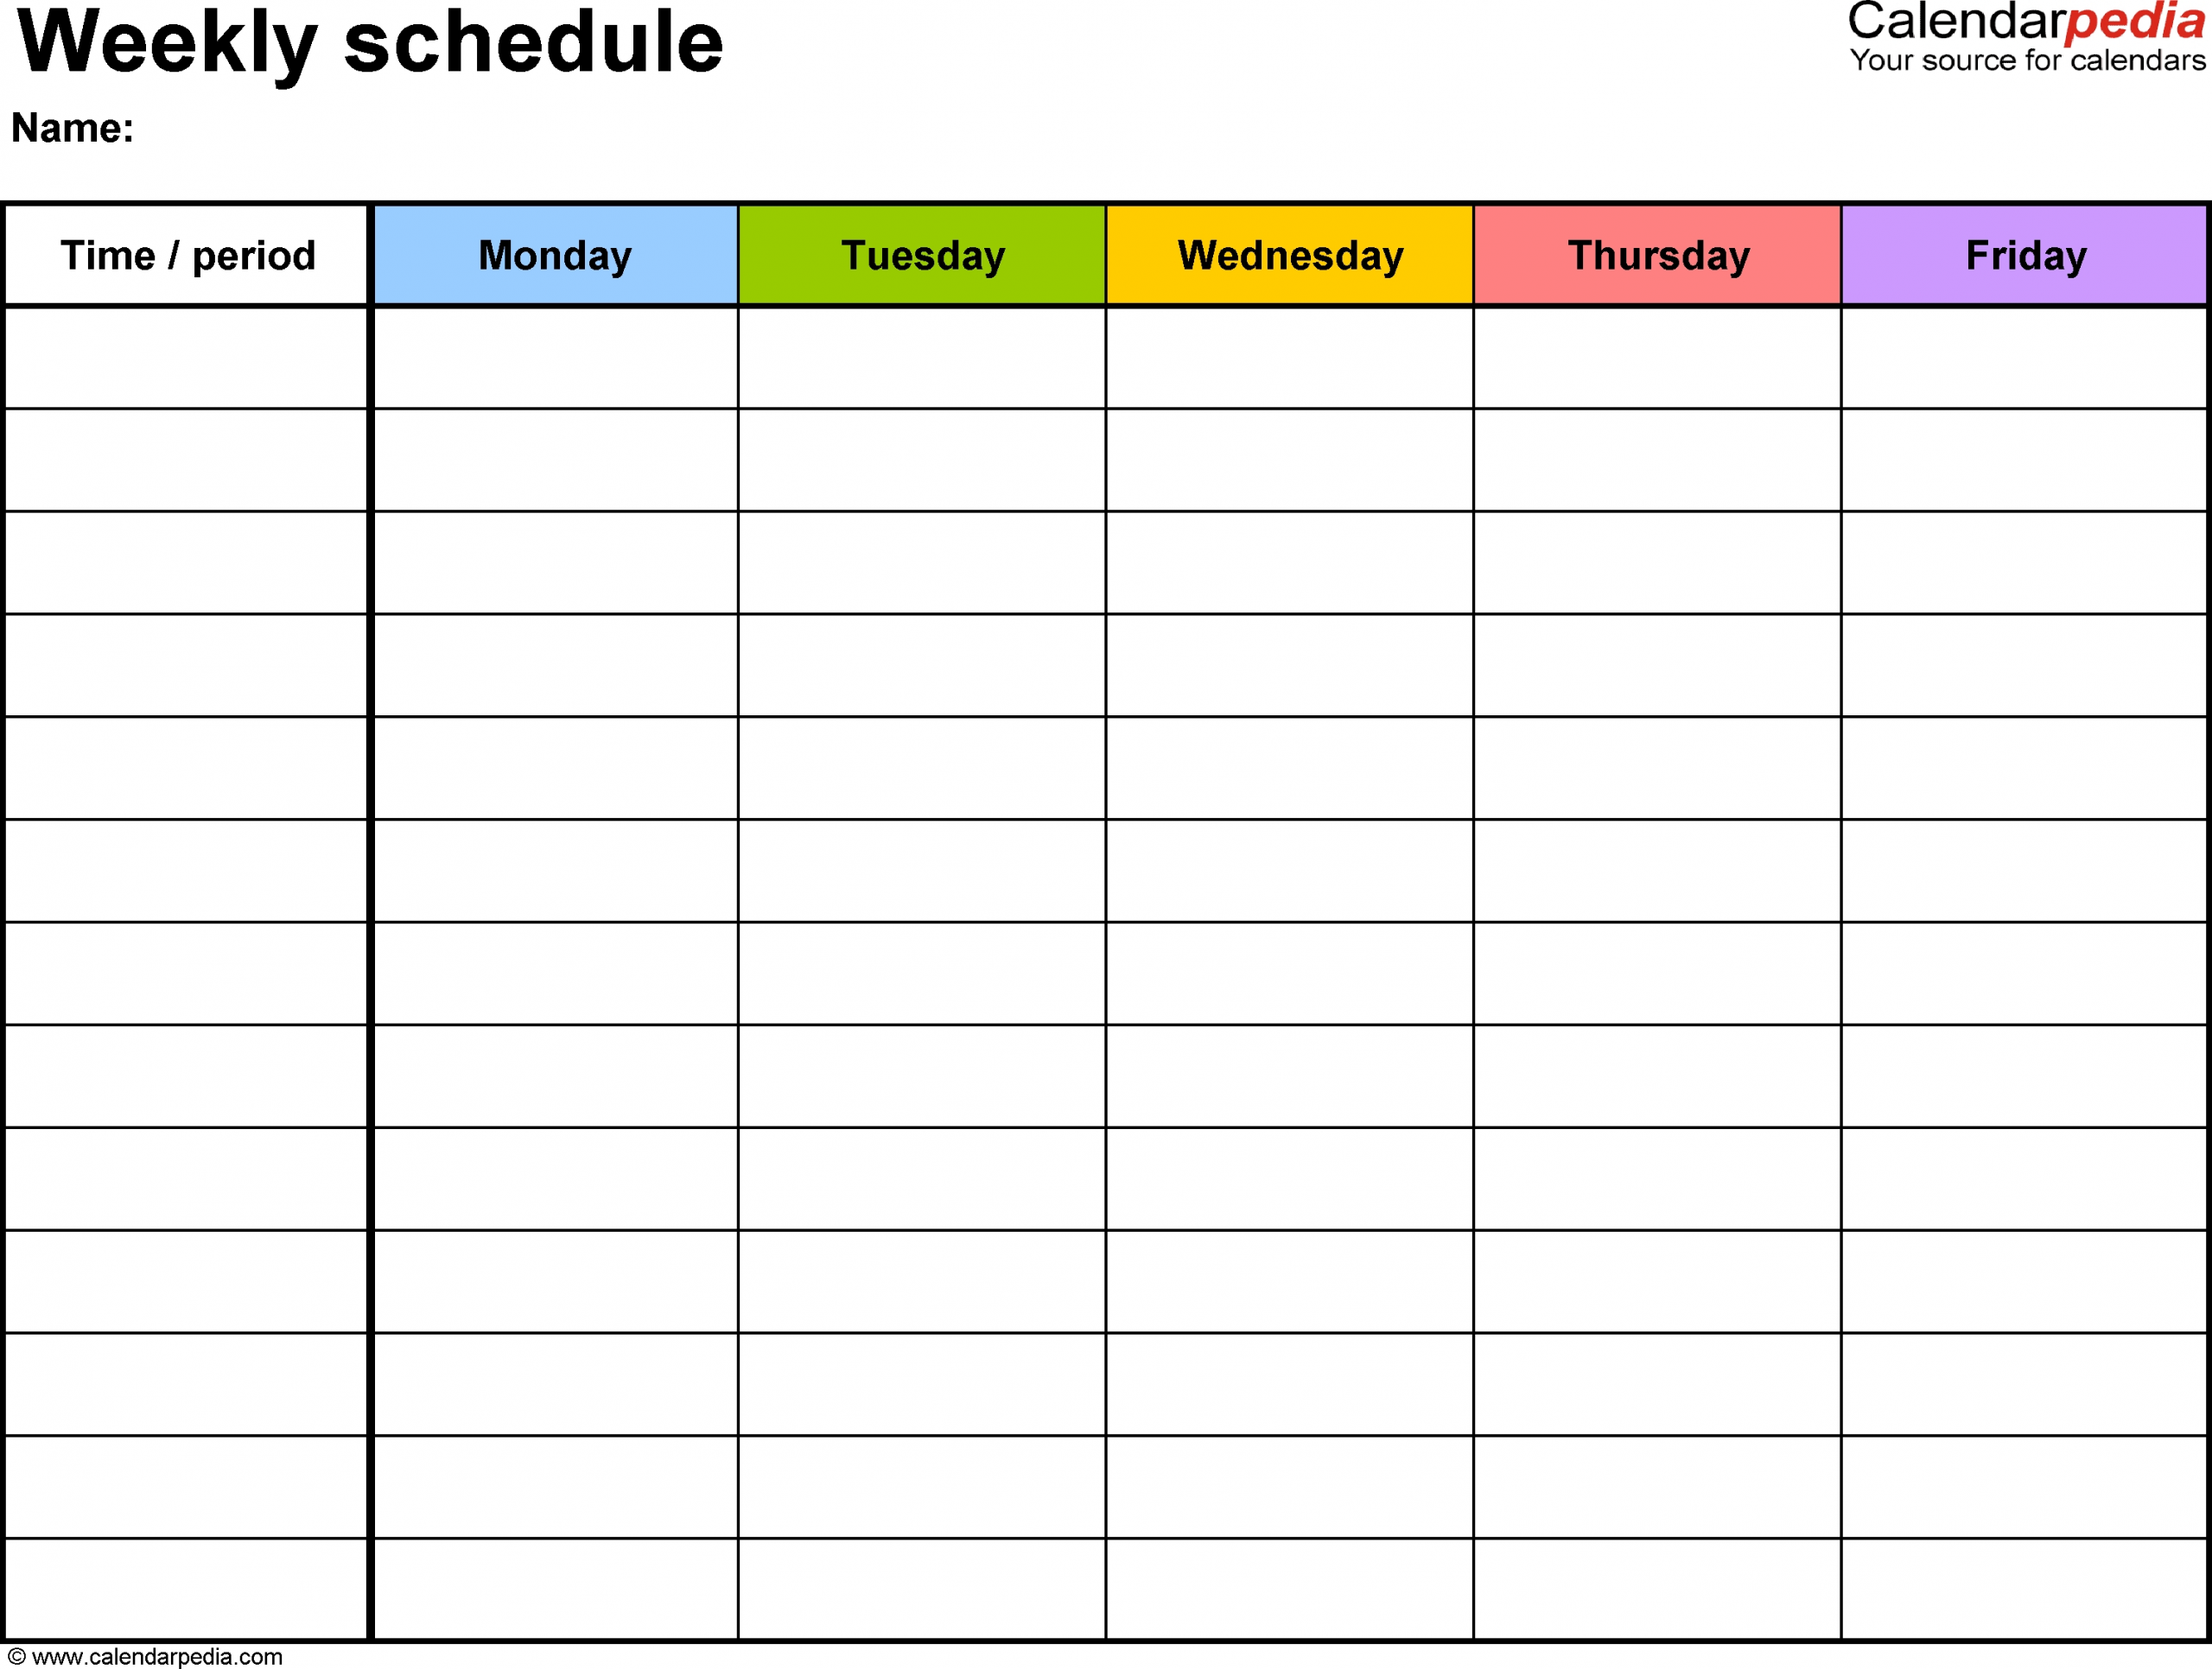 Time Slot Template Schedule Excel - Calendar Inspiration Schedule For A Day With Time Slots